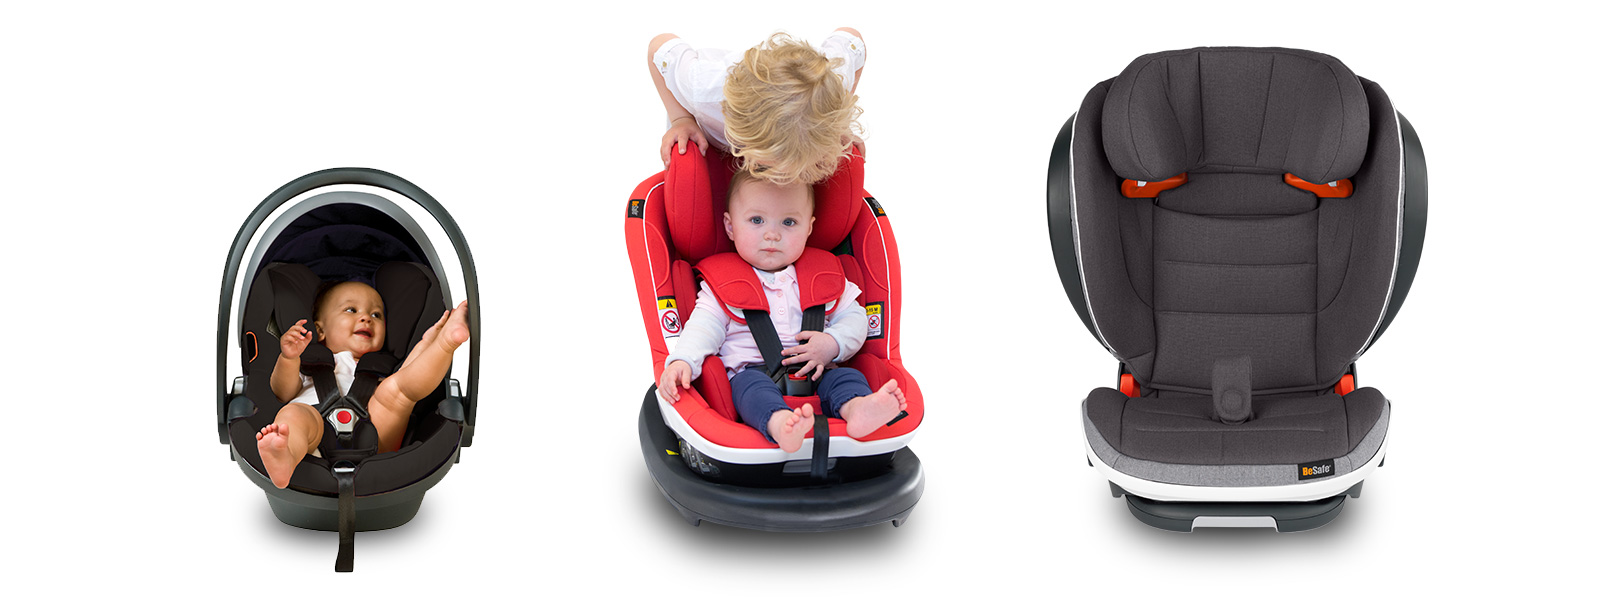 When To Change Car Seats For Children A Full Overview